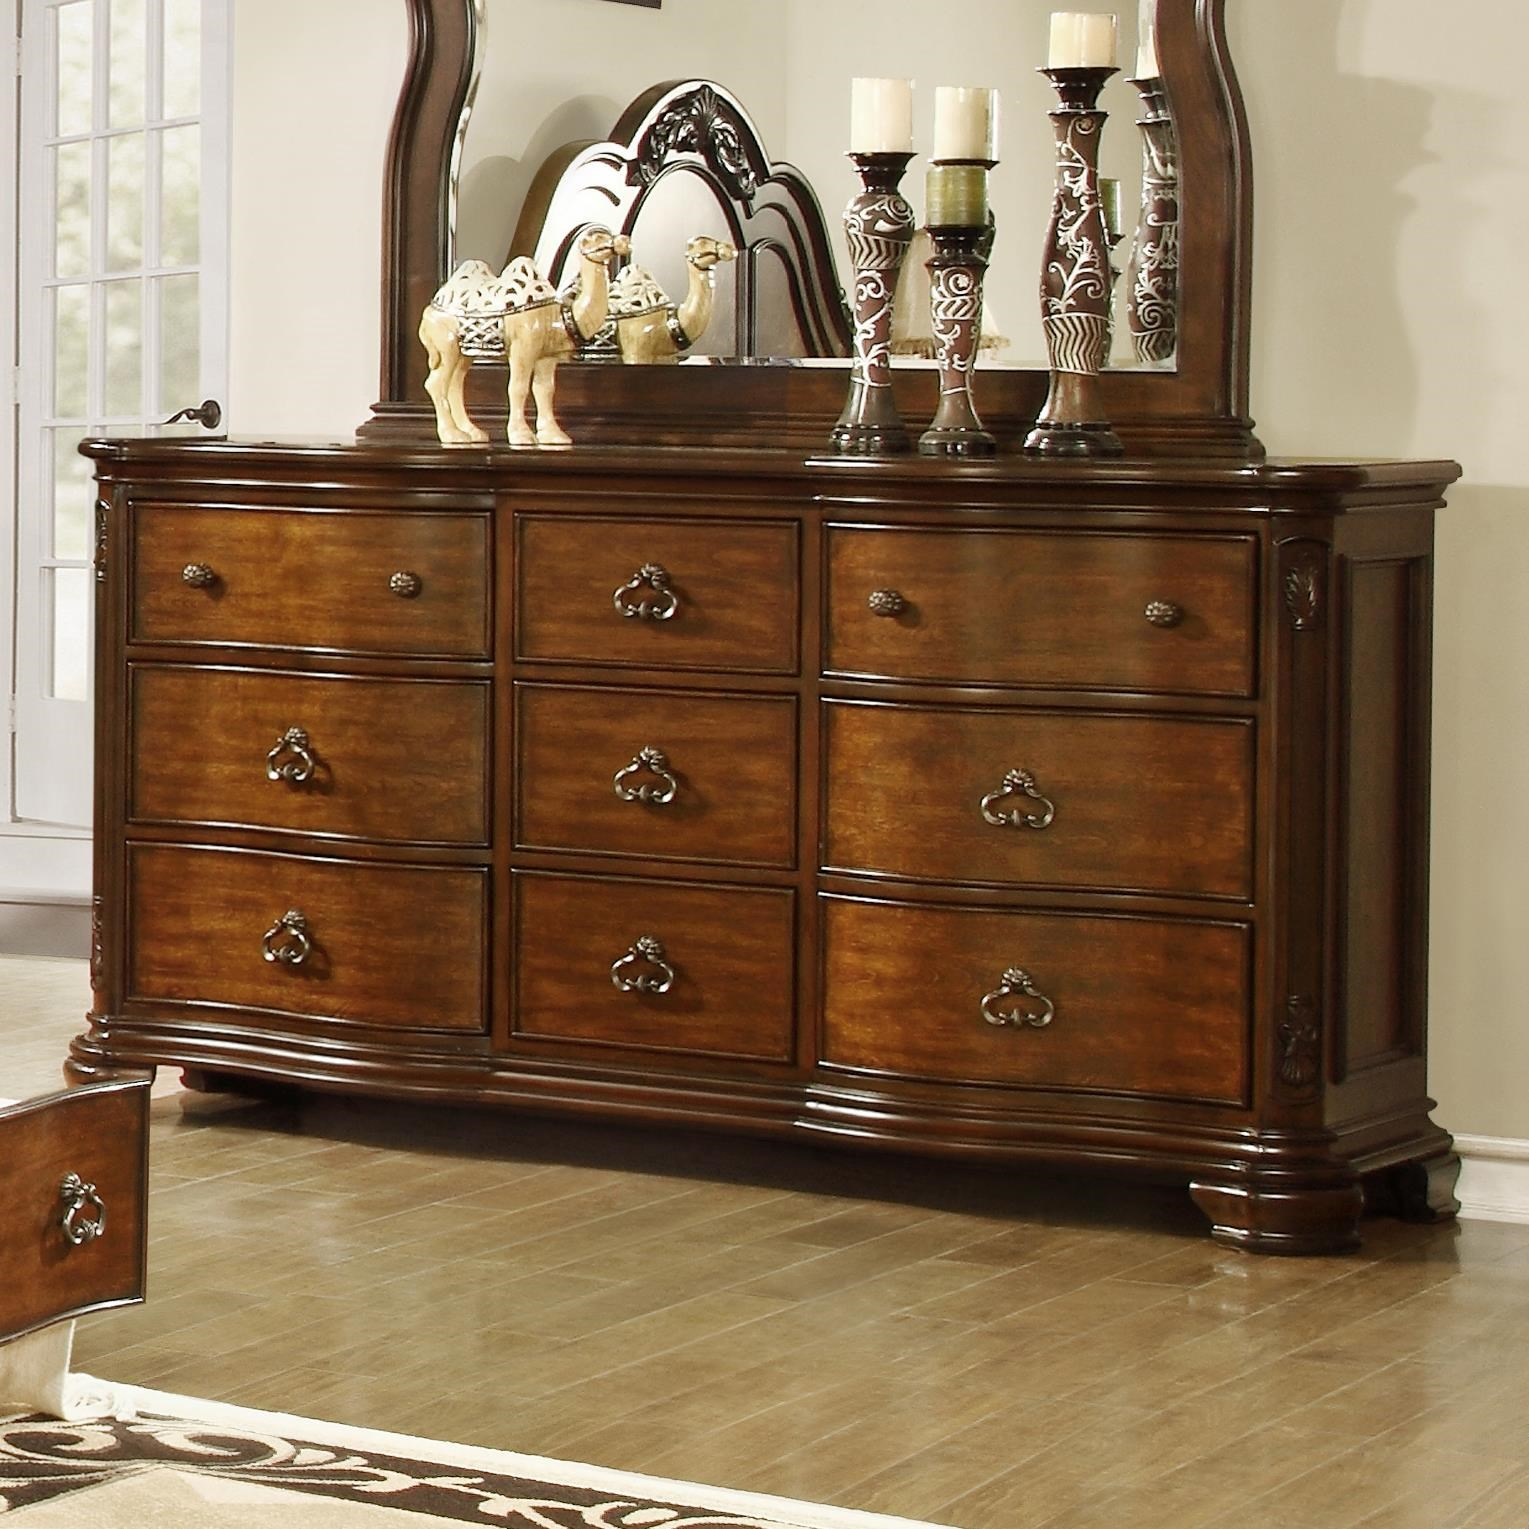 Lifestyle Tobacco Dresser with 9 Drawers